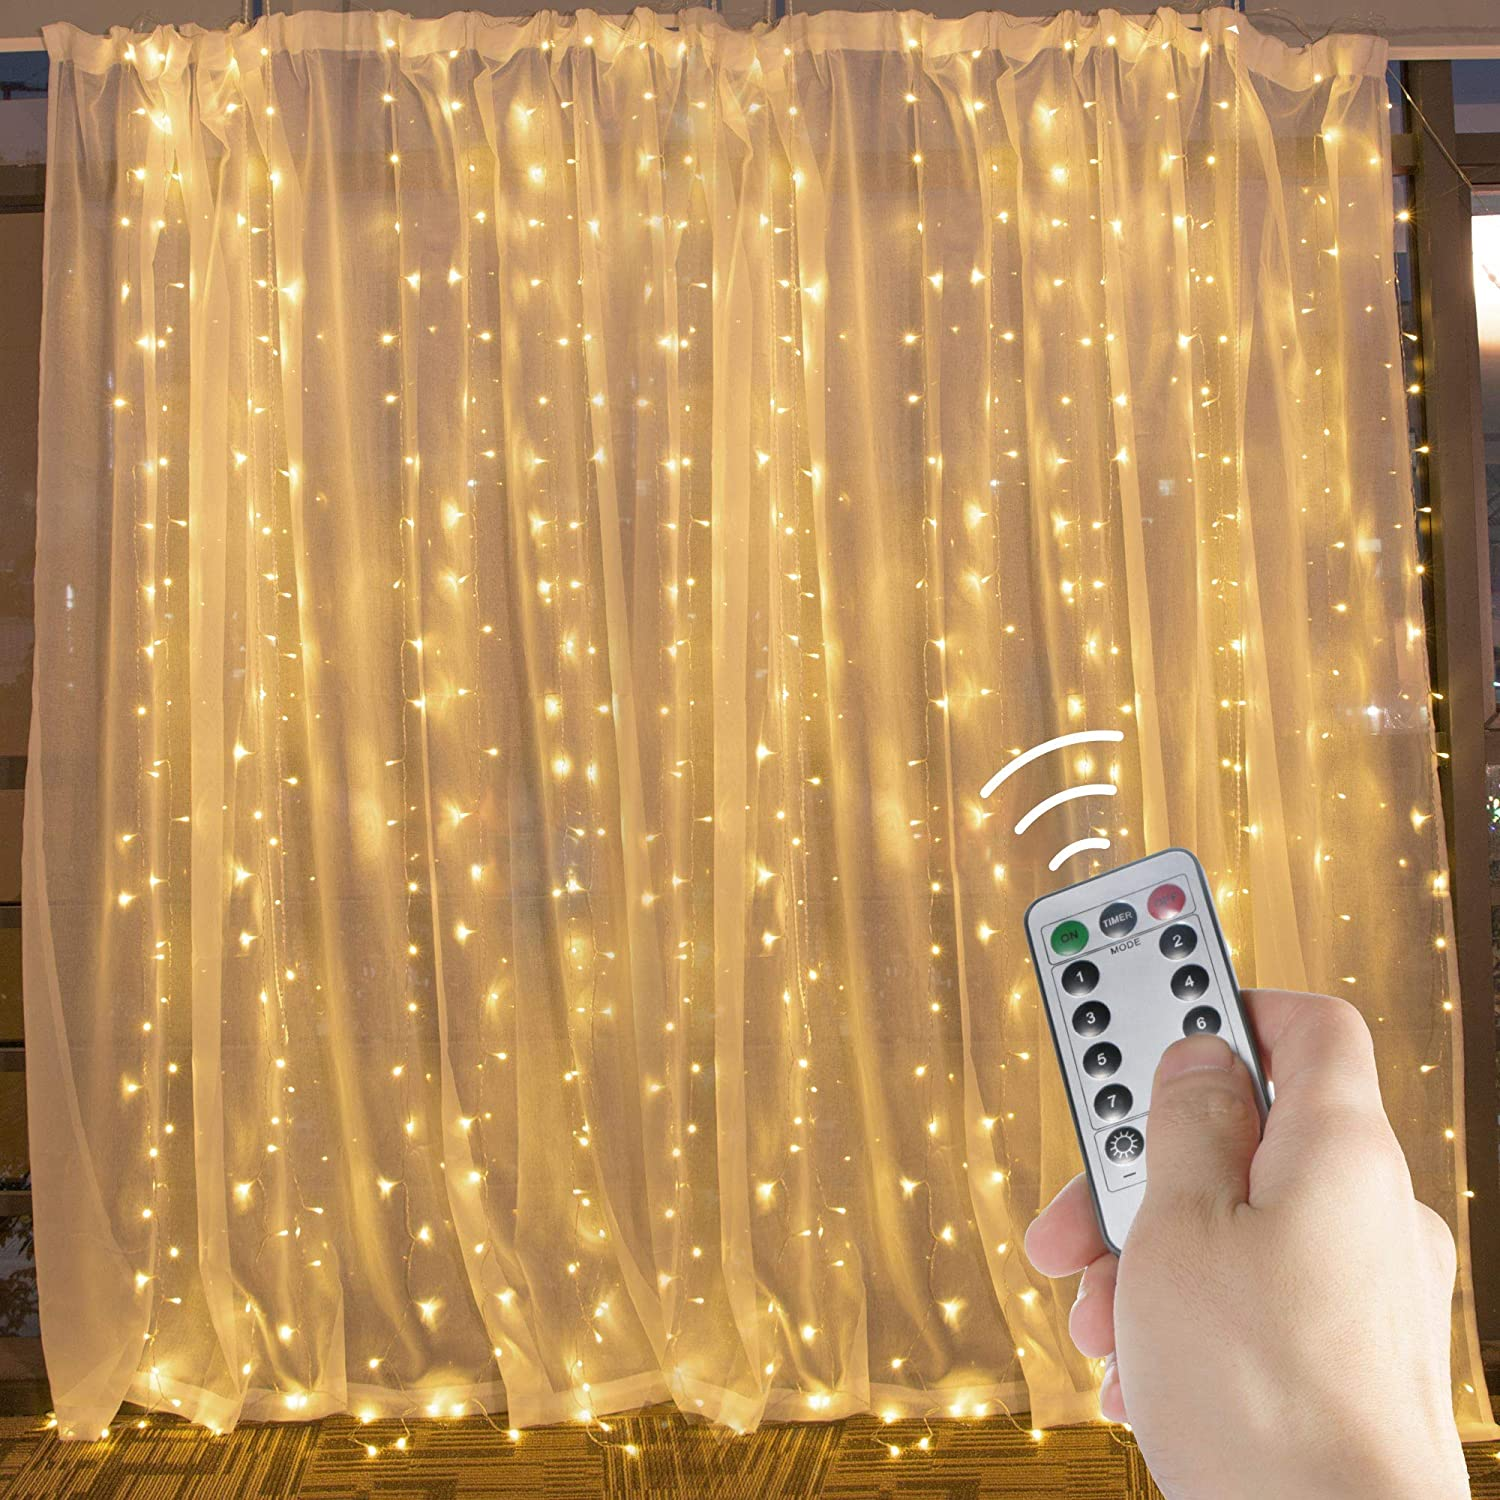 brightown hanging window curtain lights 9 8 ft dimmable connectable with 300 led remote 8 lighting modes timer for bedroom wall party indoor